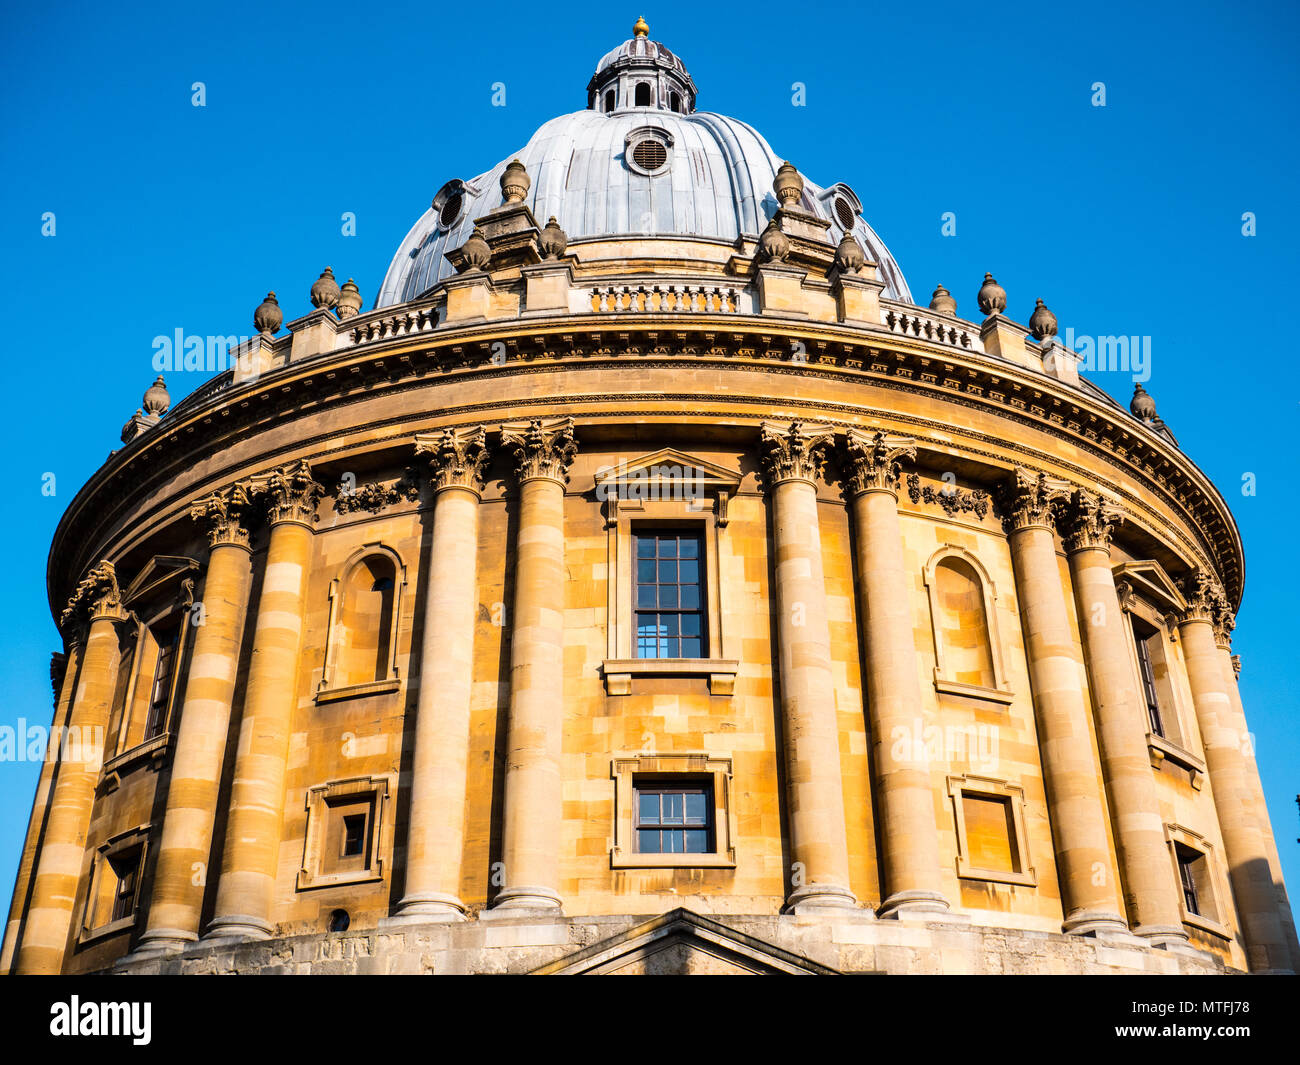 Oxford Landmark, Radcliffe Camera, Oxford University, Radcliffe Square, Oxford, Oxfordshire, England, UK, GB. - Stock Image